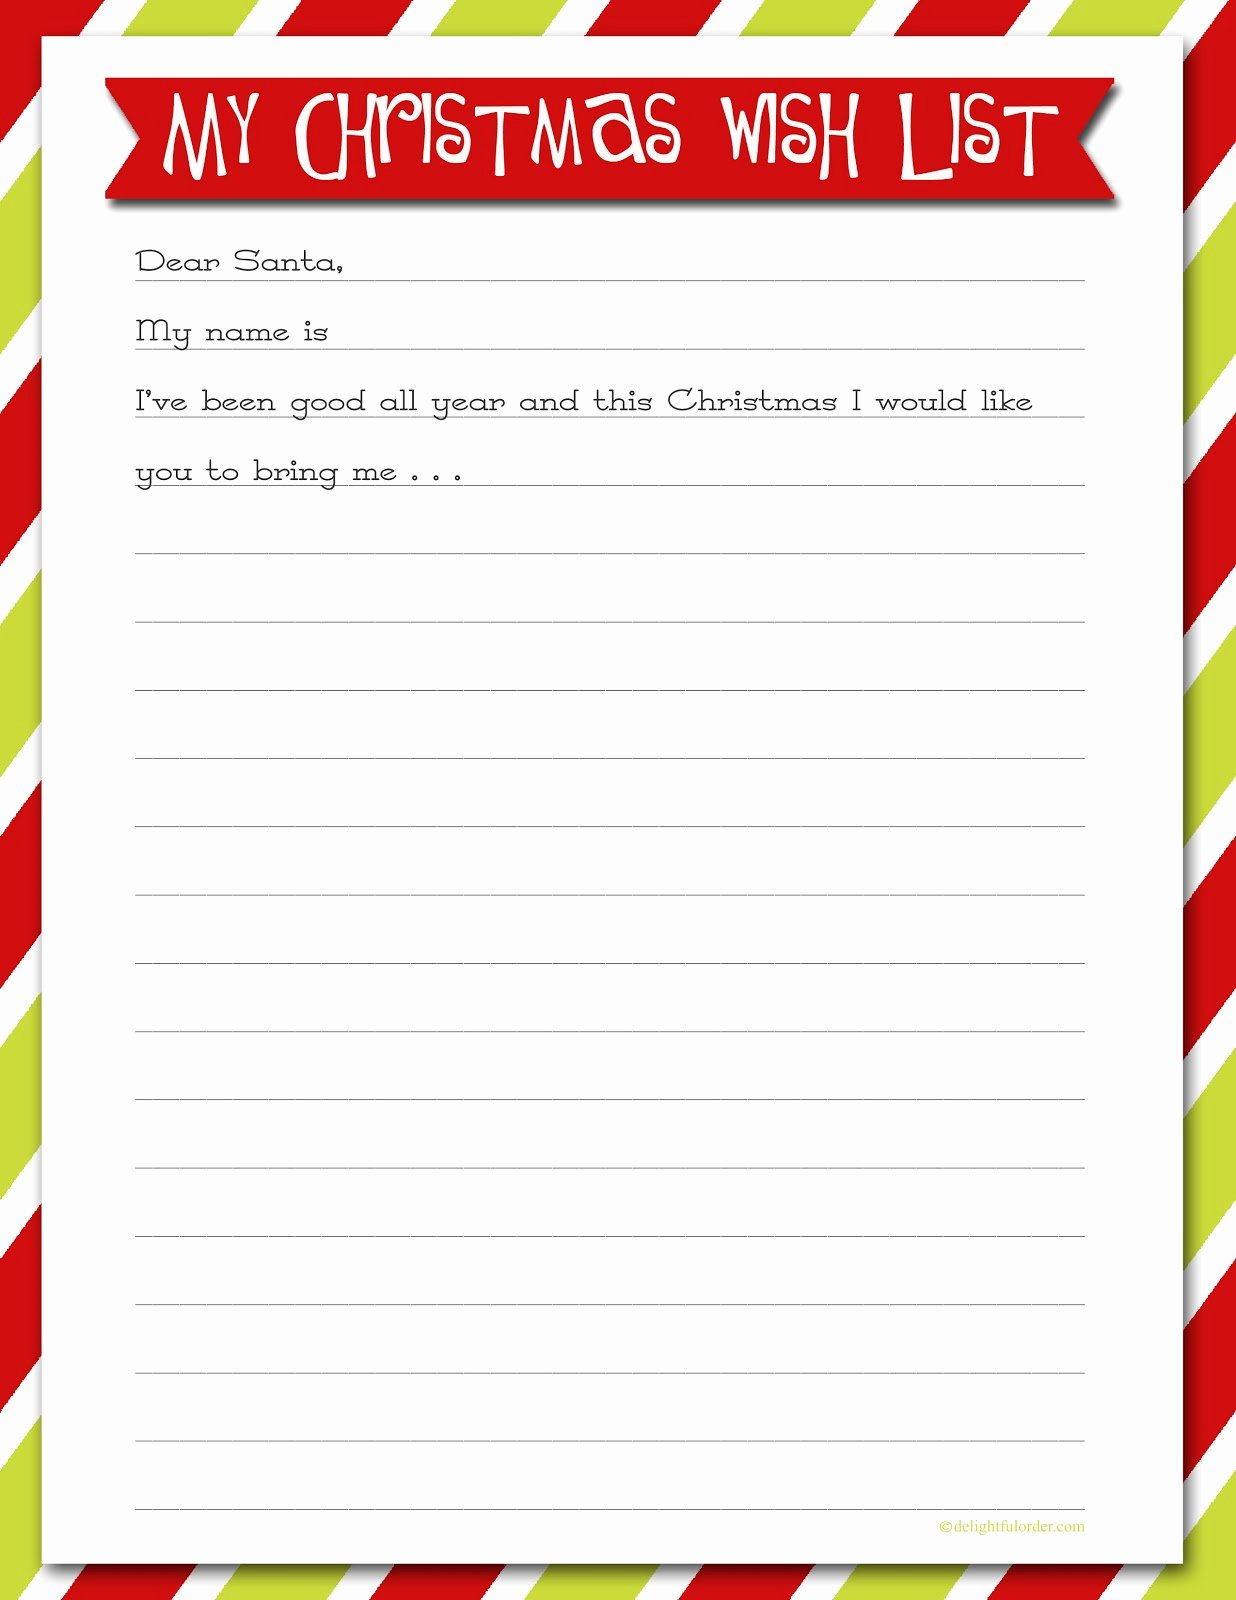 Wish List Template Unique Printable Christmas Wish Lists are We there yet